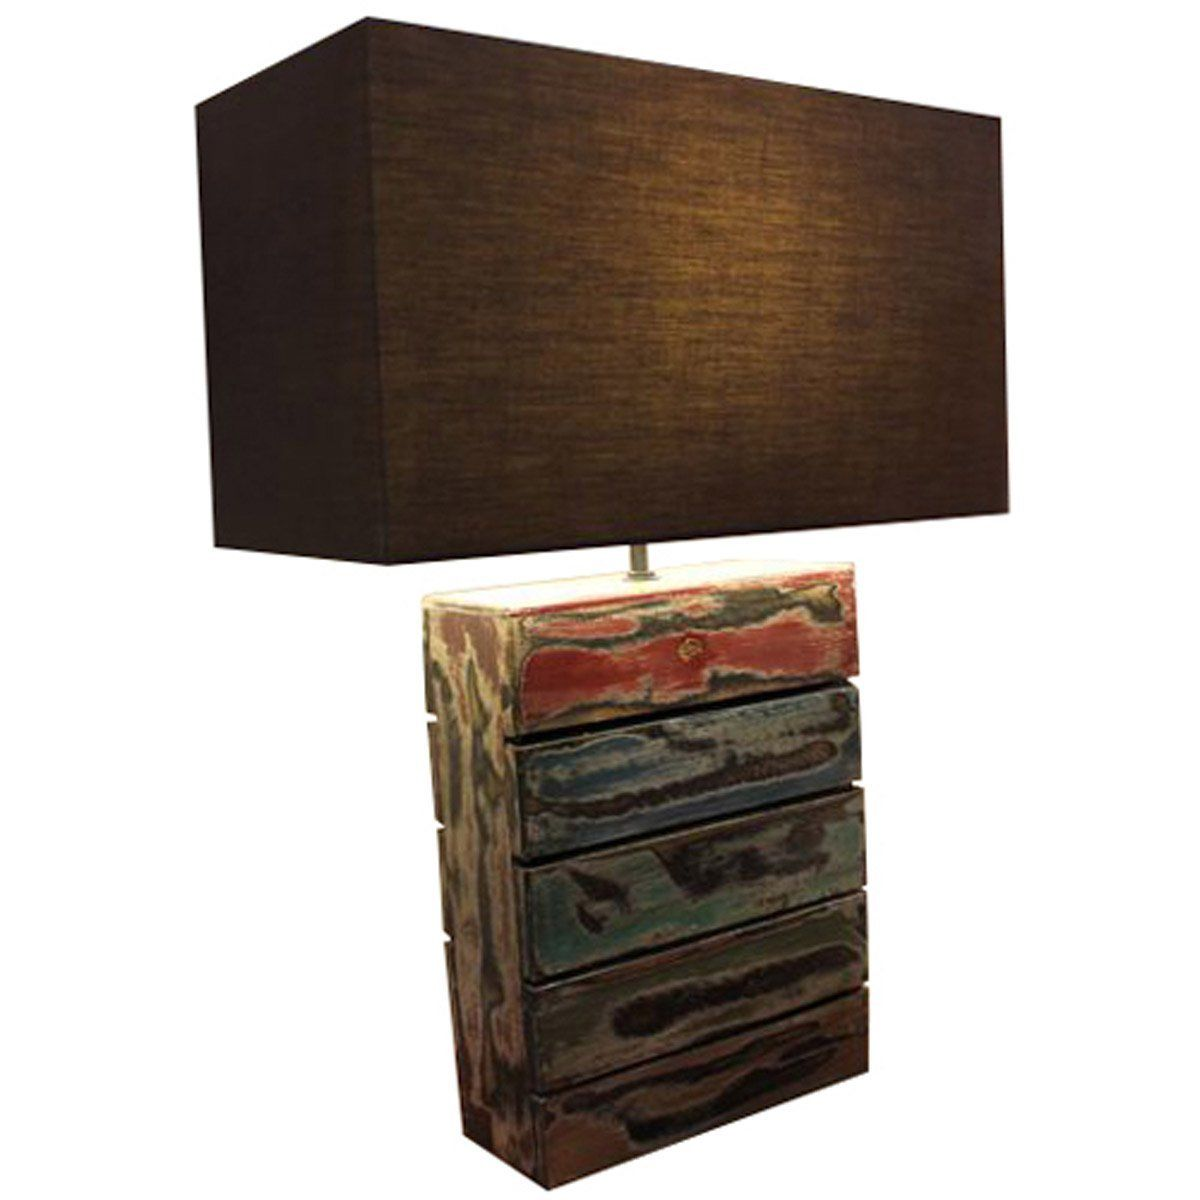 Salvaged Boatwood Table Lamp (With Images)